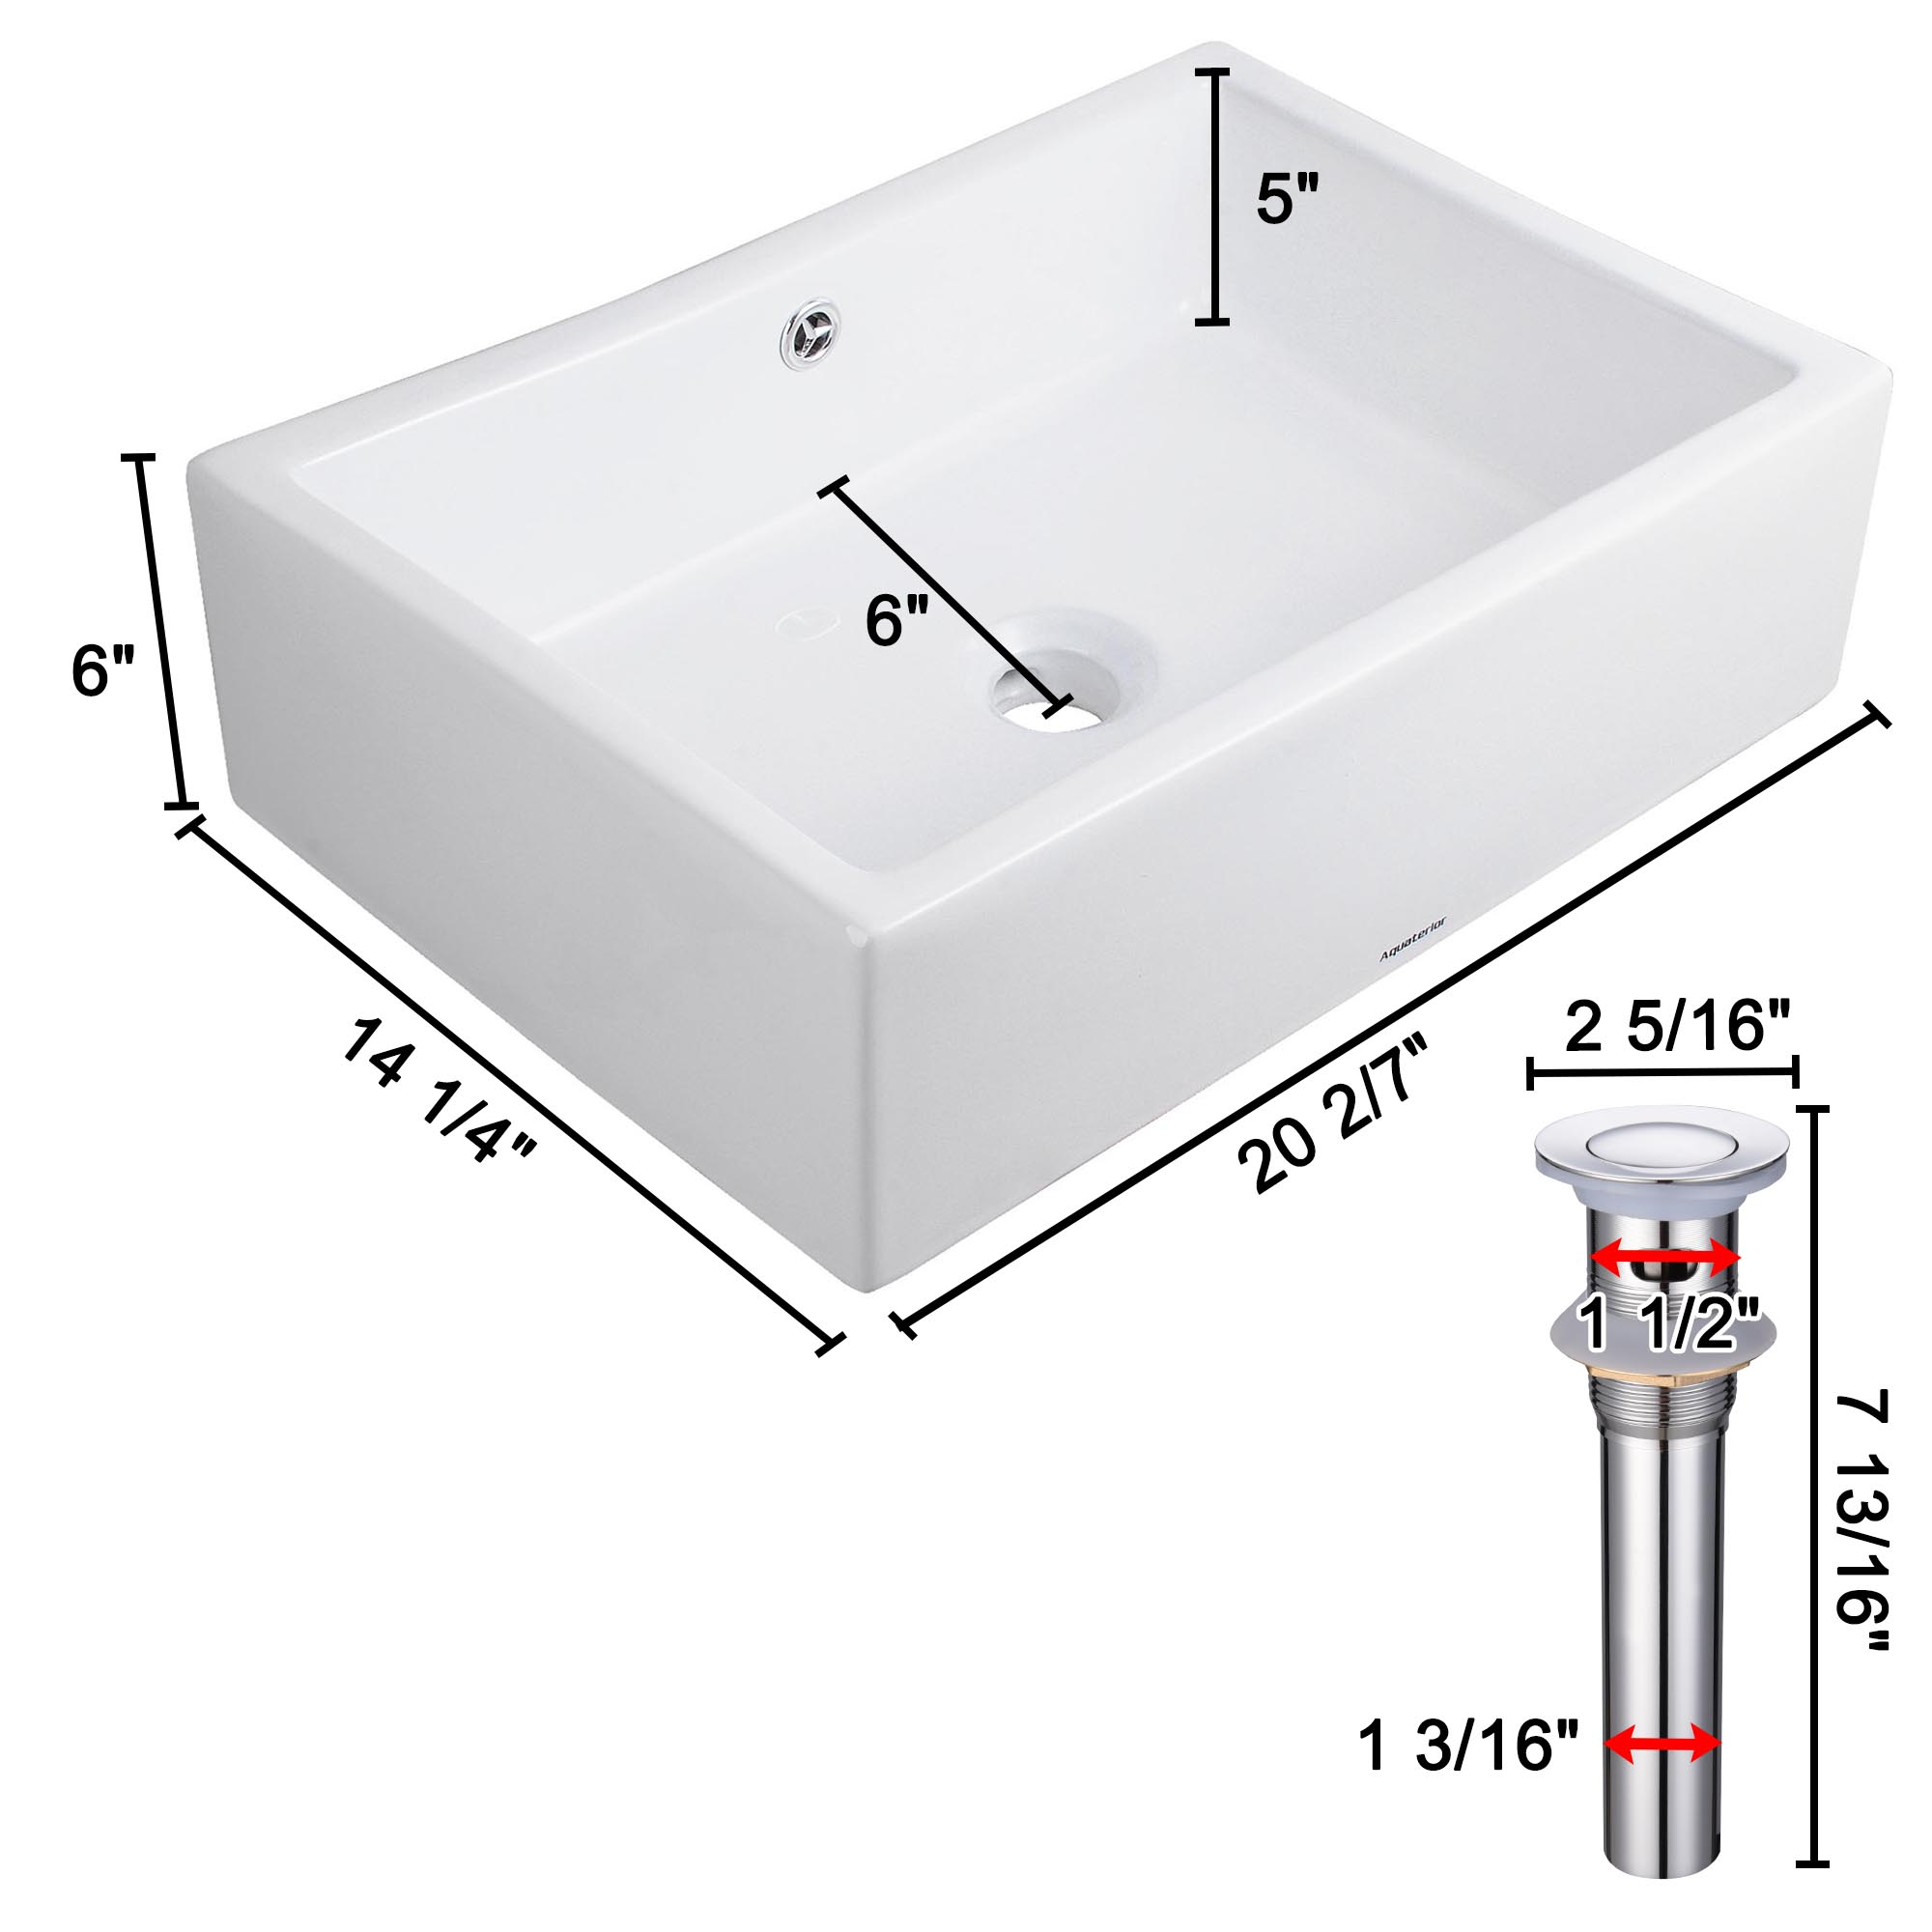 20-034-Rectangle-Bathroom-Vessel-Sink-Countertop-Porcelain-Basin-Pop-up-Drain-Kit thumbnail 21